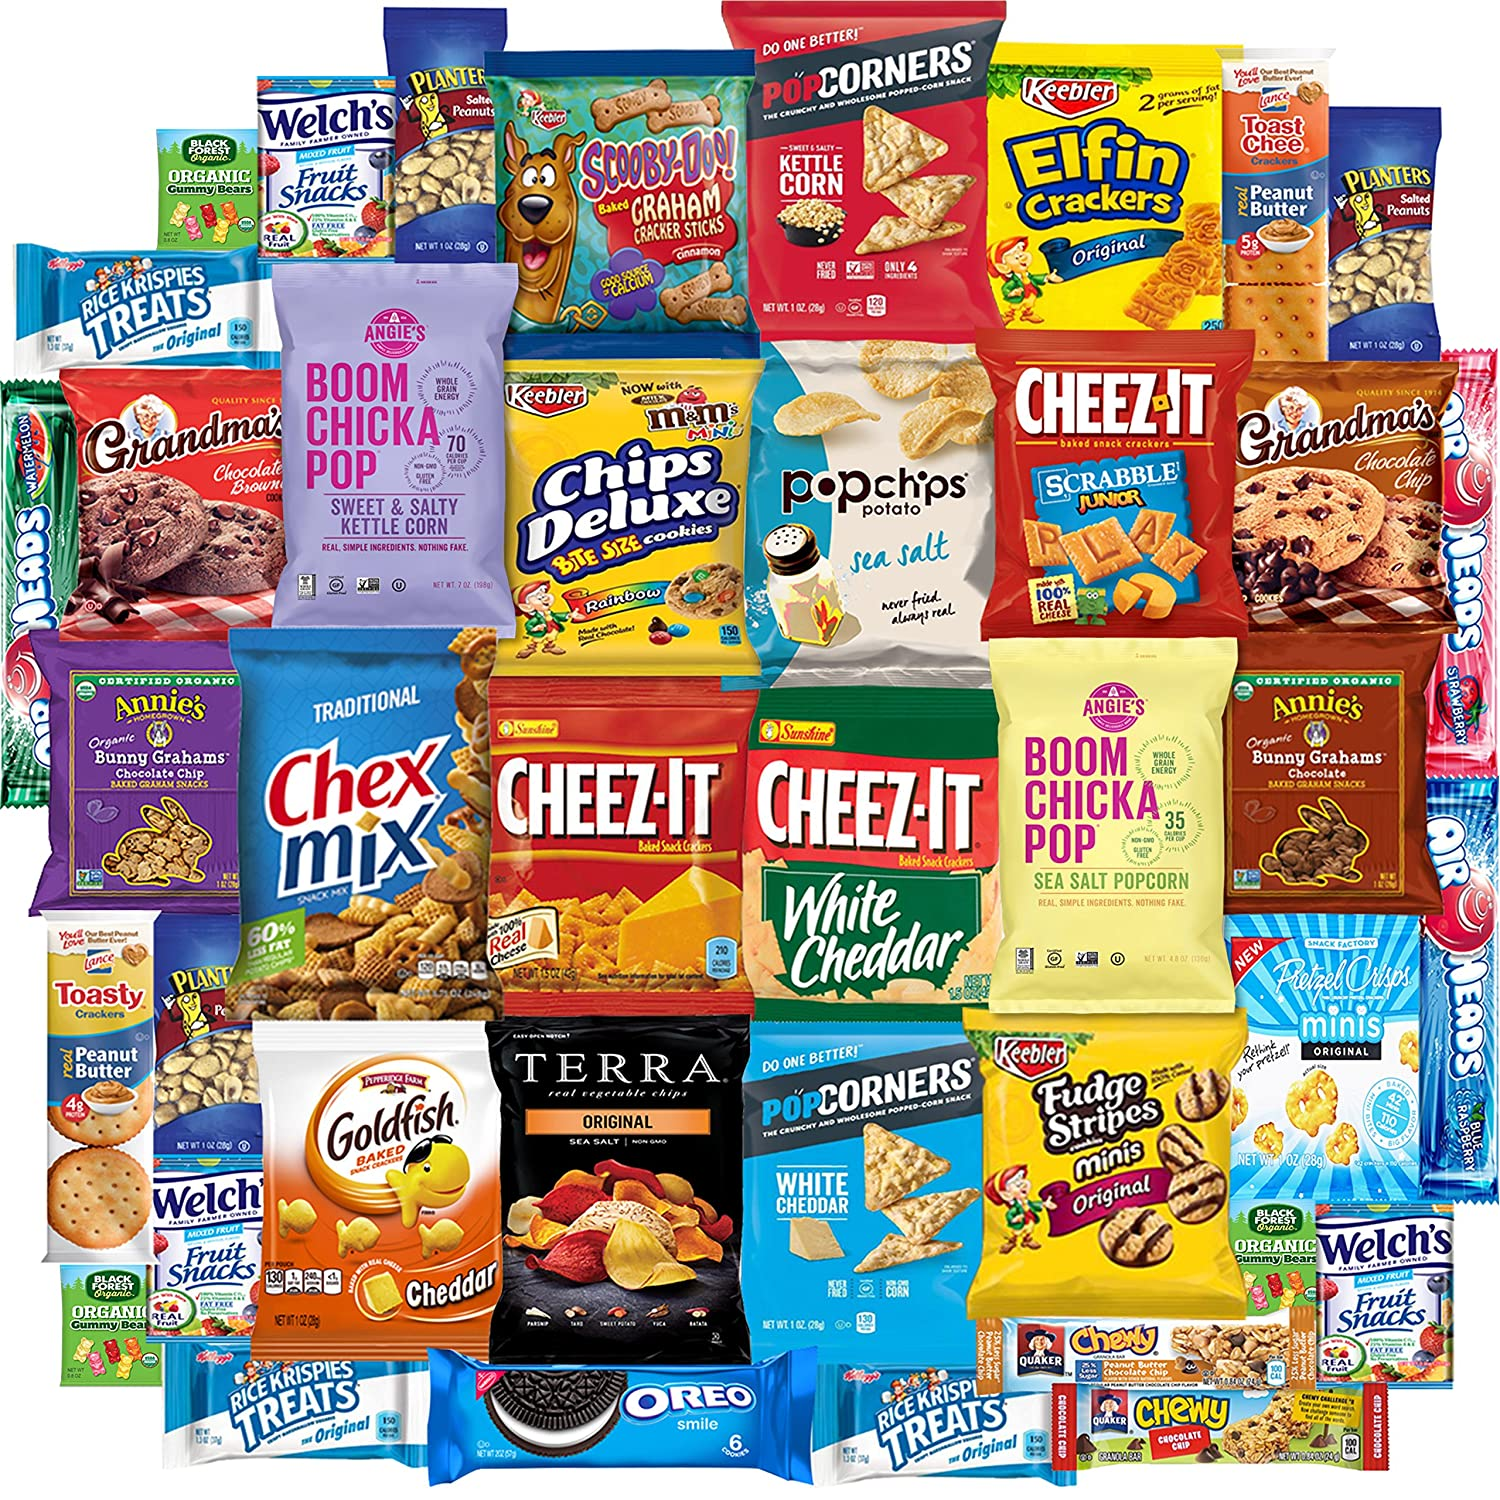 snack chest care package 40 count variety snacks gift. Black Bedroom Furniture Sets. Home Design Ideas